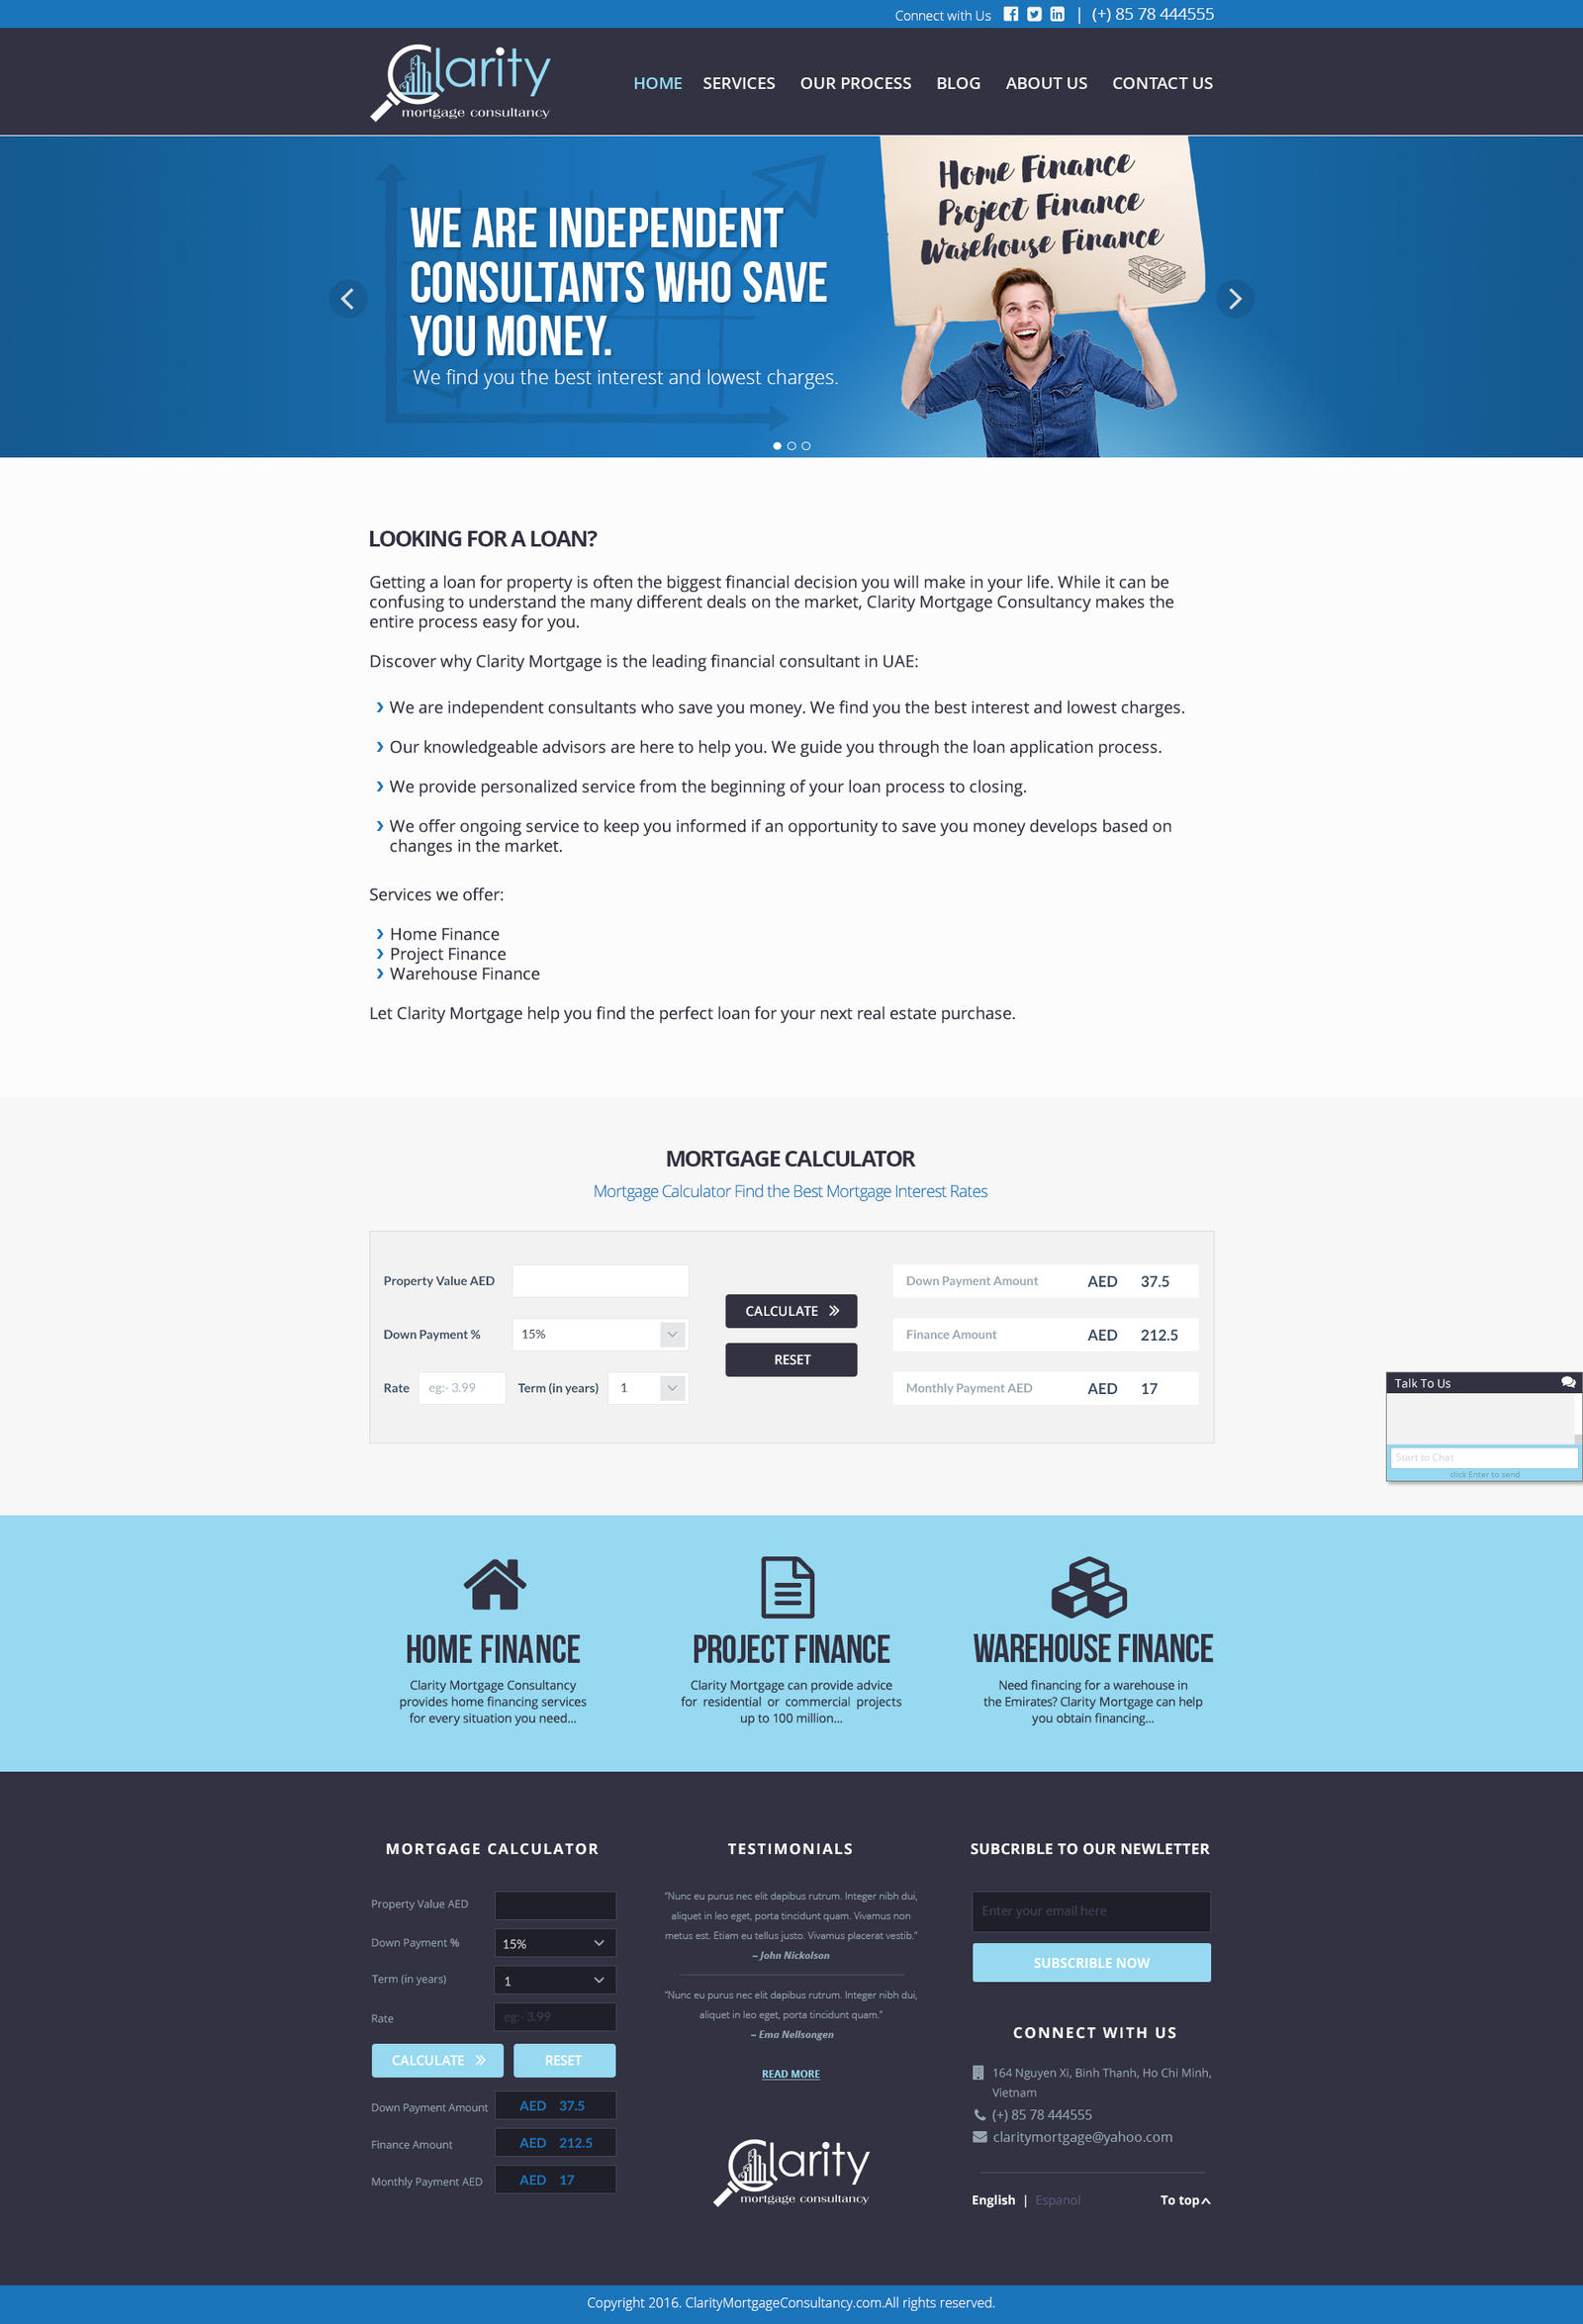 Clarity Mortgage Consultancy HOMEPAGE by zokac1